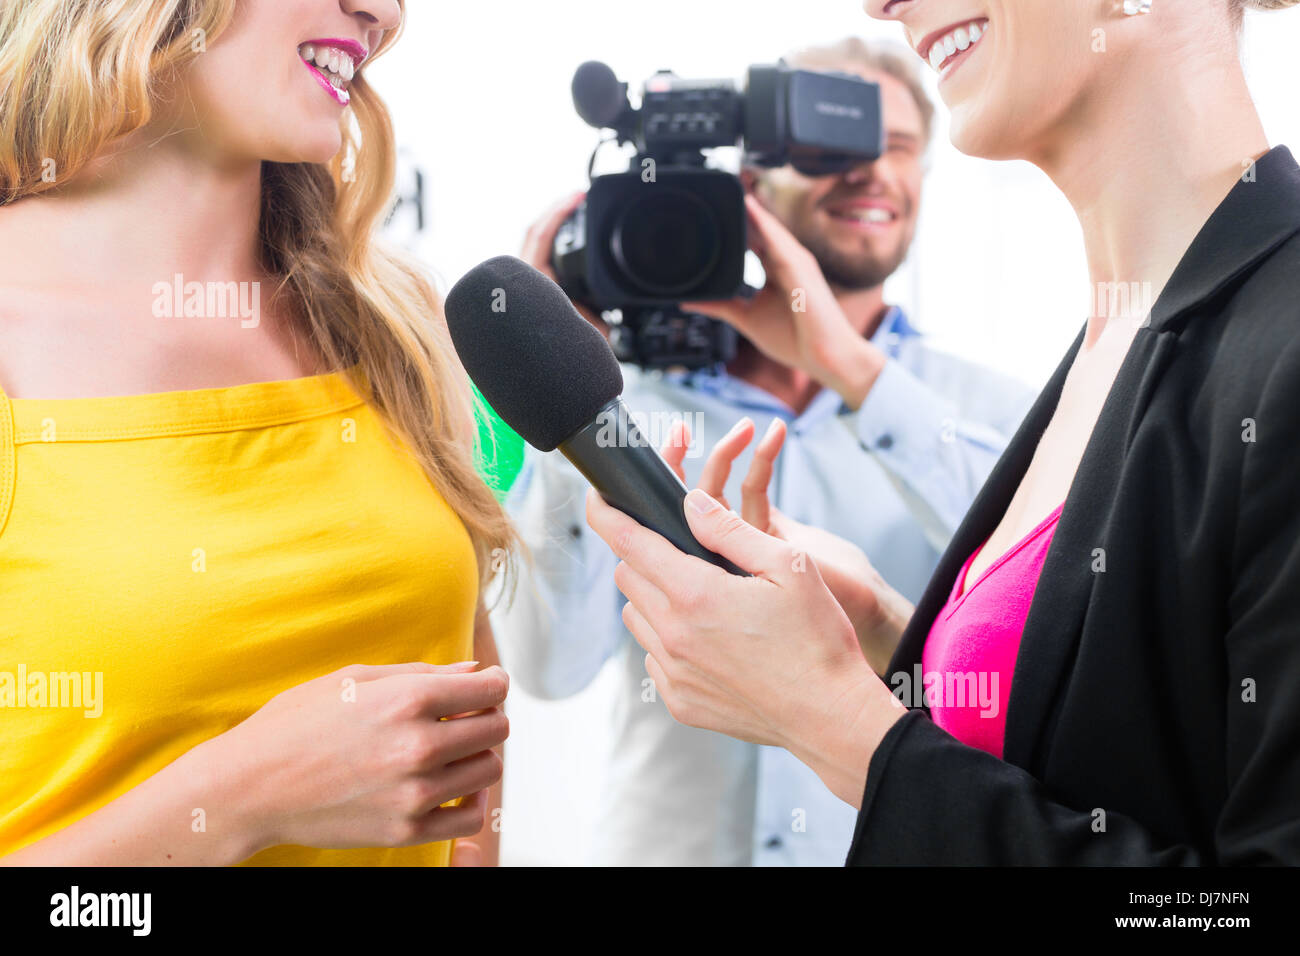 Reporter and cameraman film shoot actress interview on film set for TV or Television - Stock Image